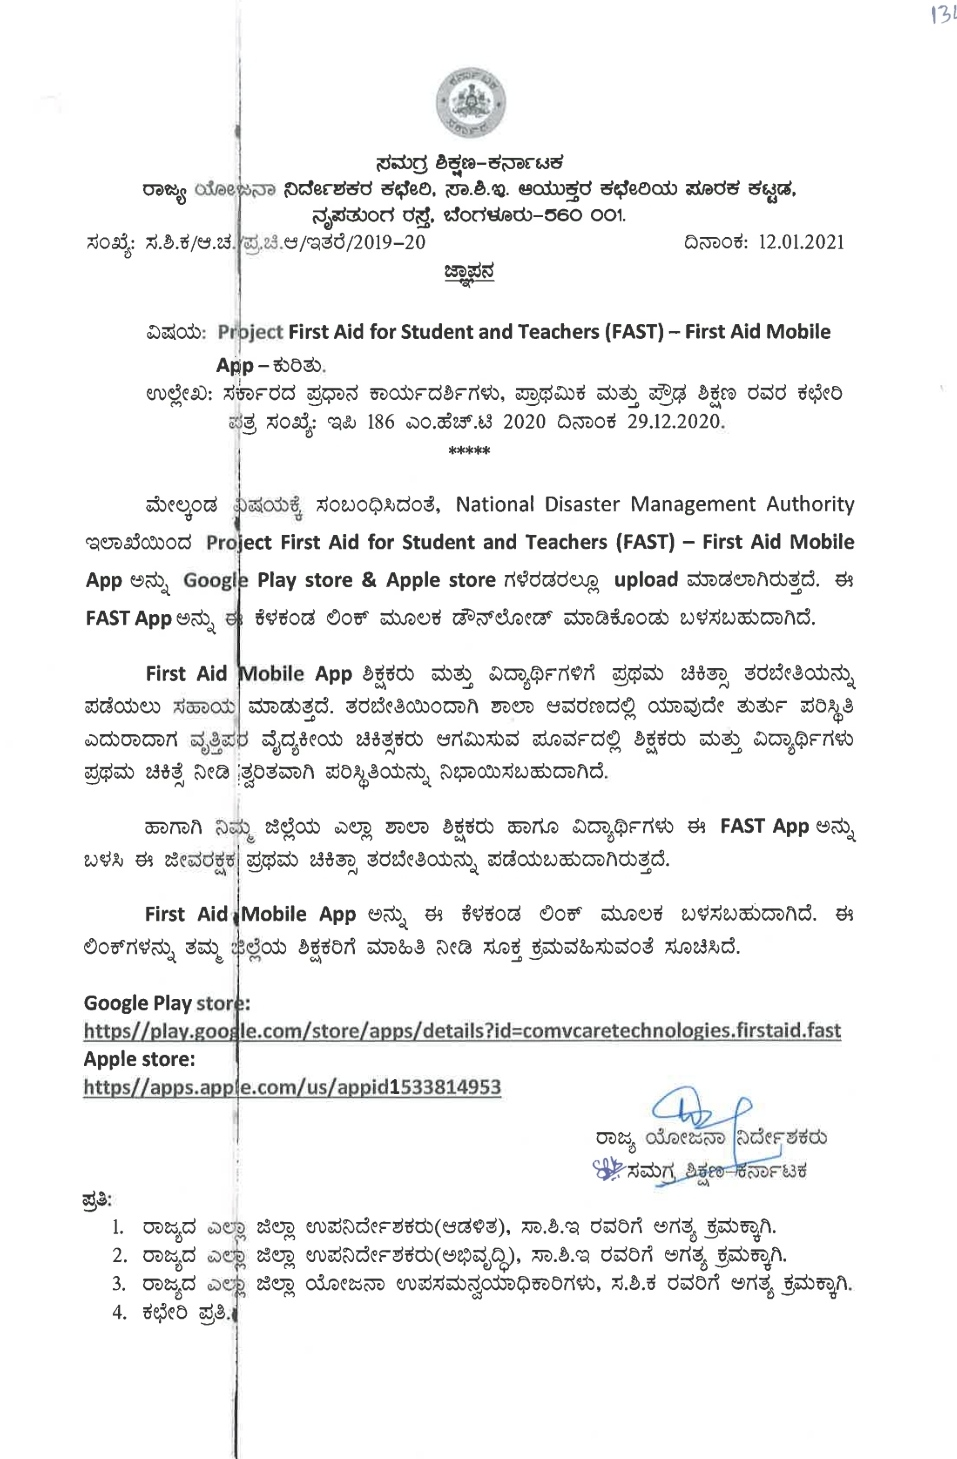 Departmental Directive on Every Teachers Downloading First Aid Students and Teachers on First Aid